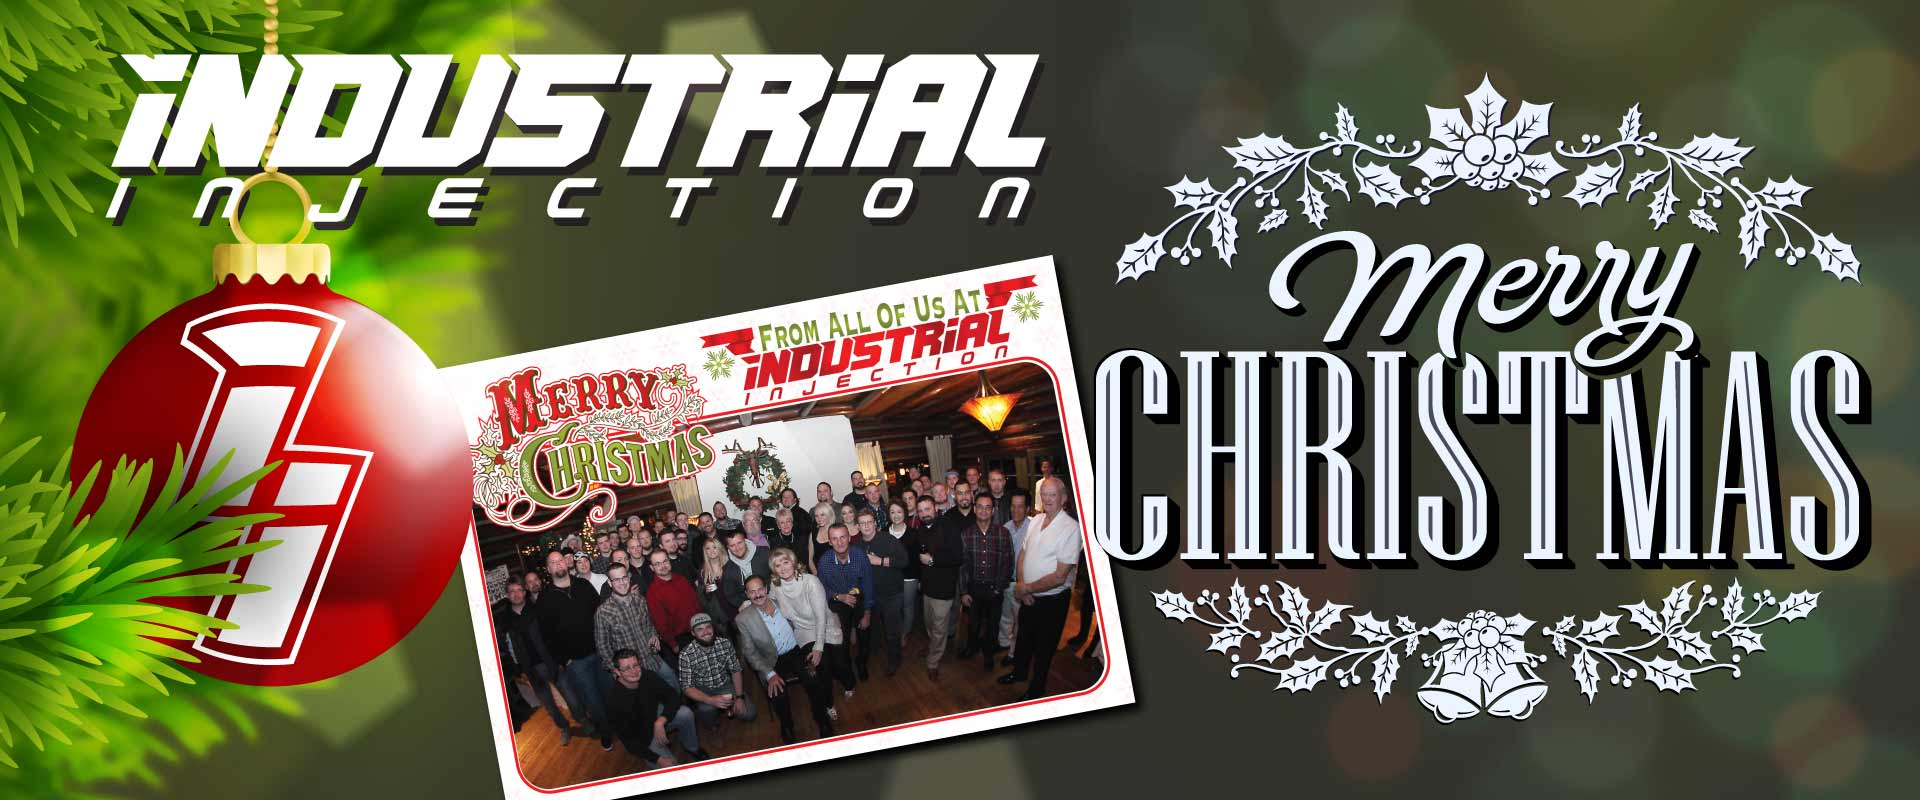 Merry Christmas from Industrial Injection